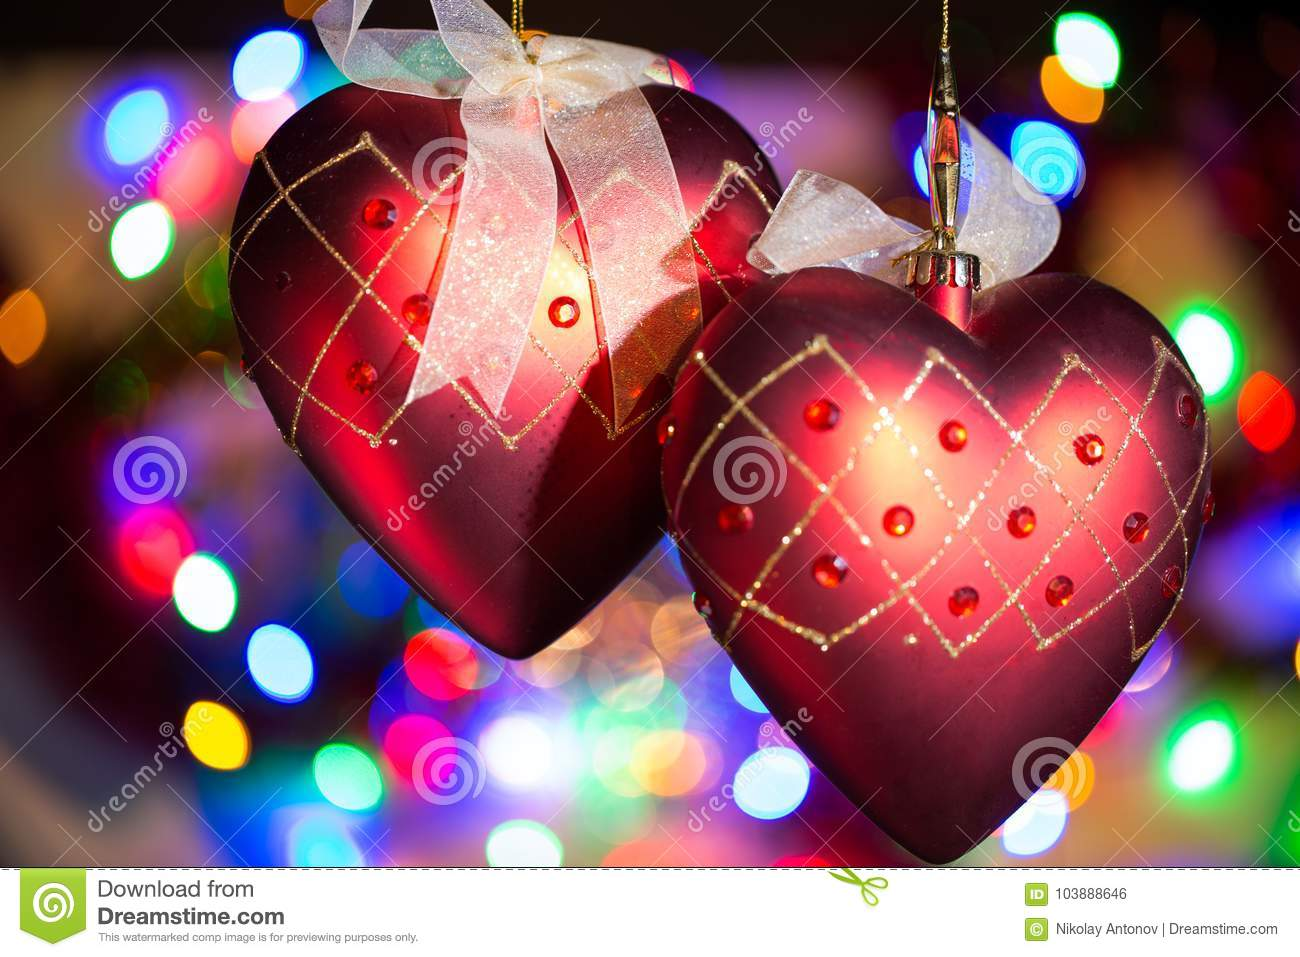 Christmas Tree Heart Decorations Against Nice Lights Background